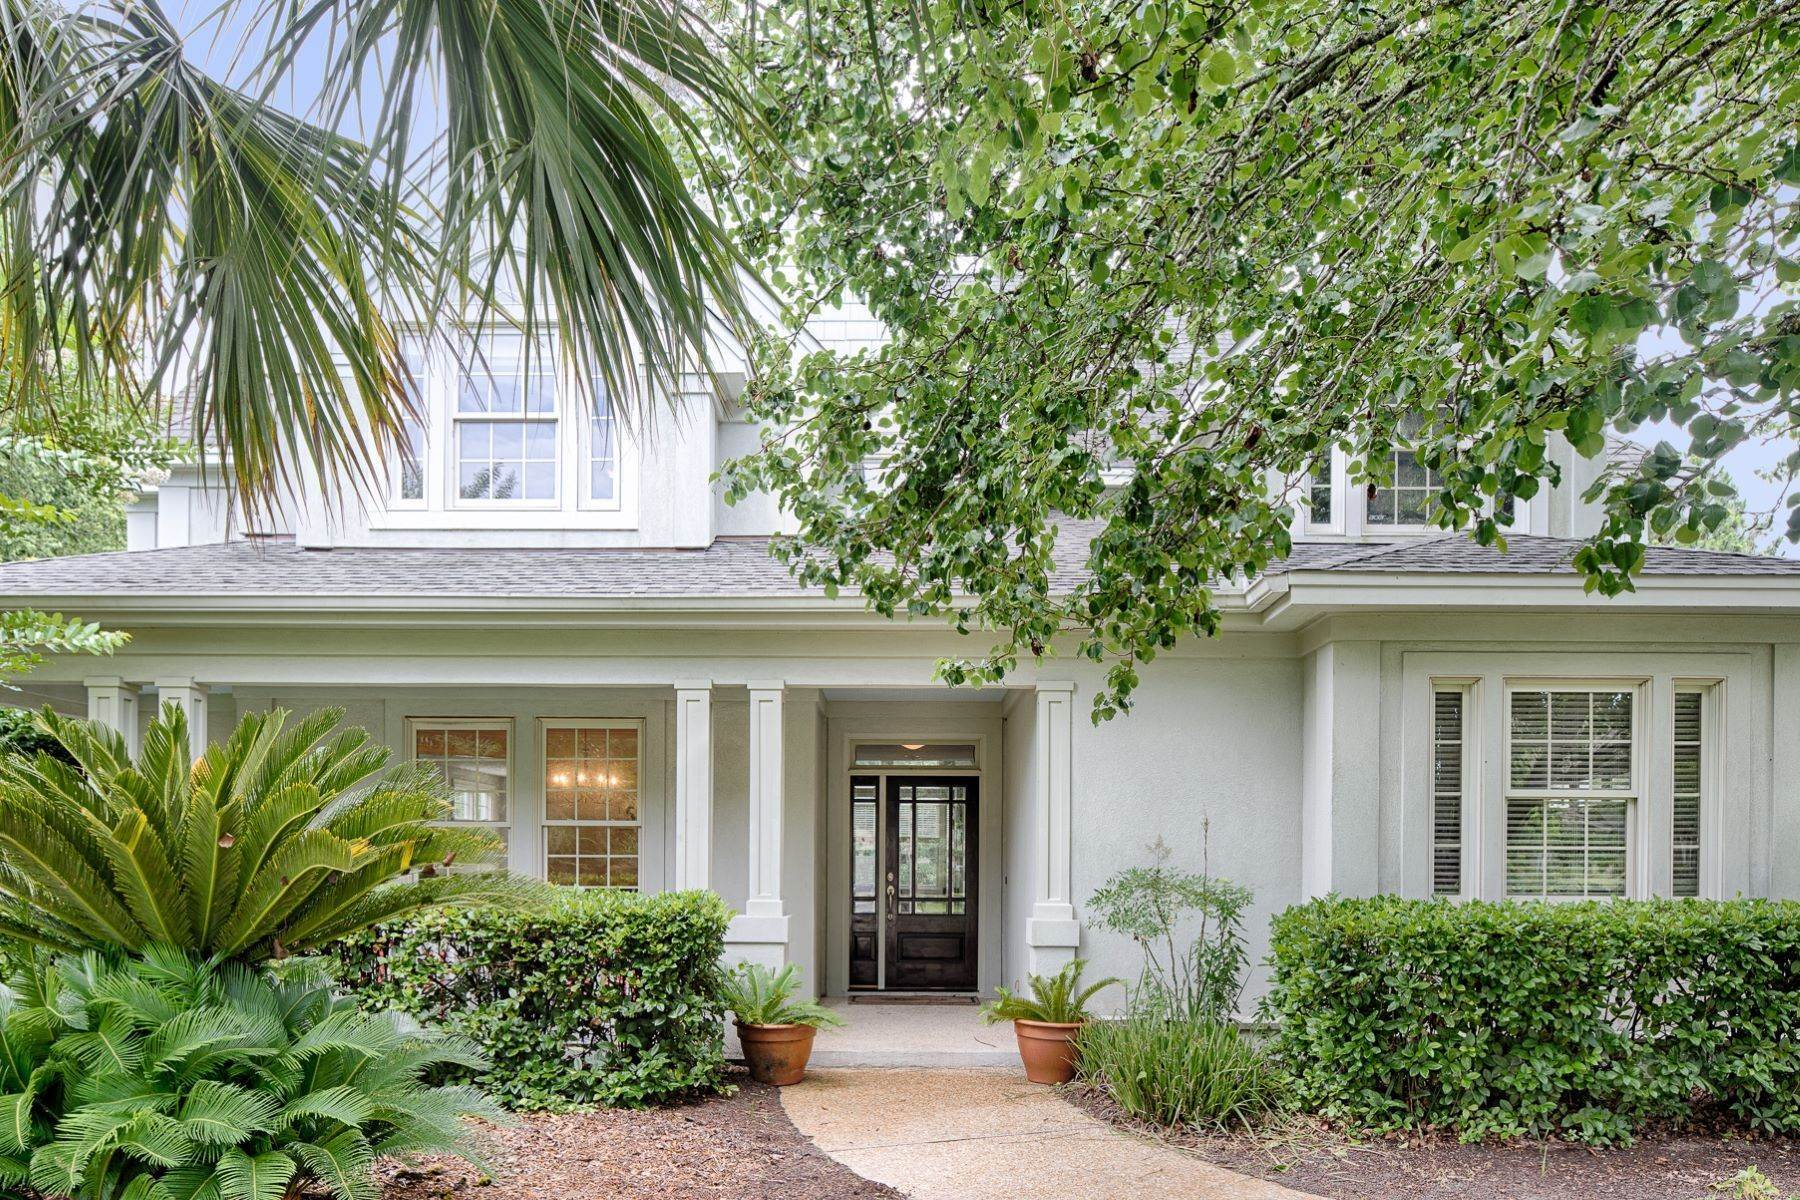 Single Family Homes for Sale at Hilton Head Plantation 16 Palm View Drive Hilton Head Island, South Carolina 29926 United States